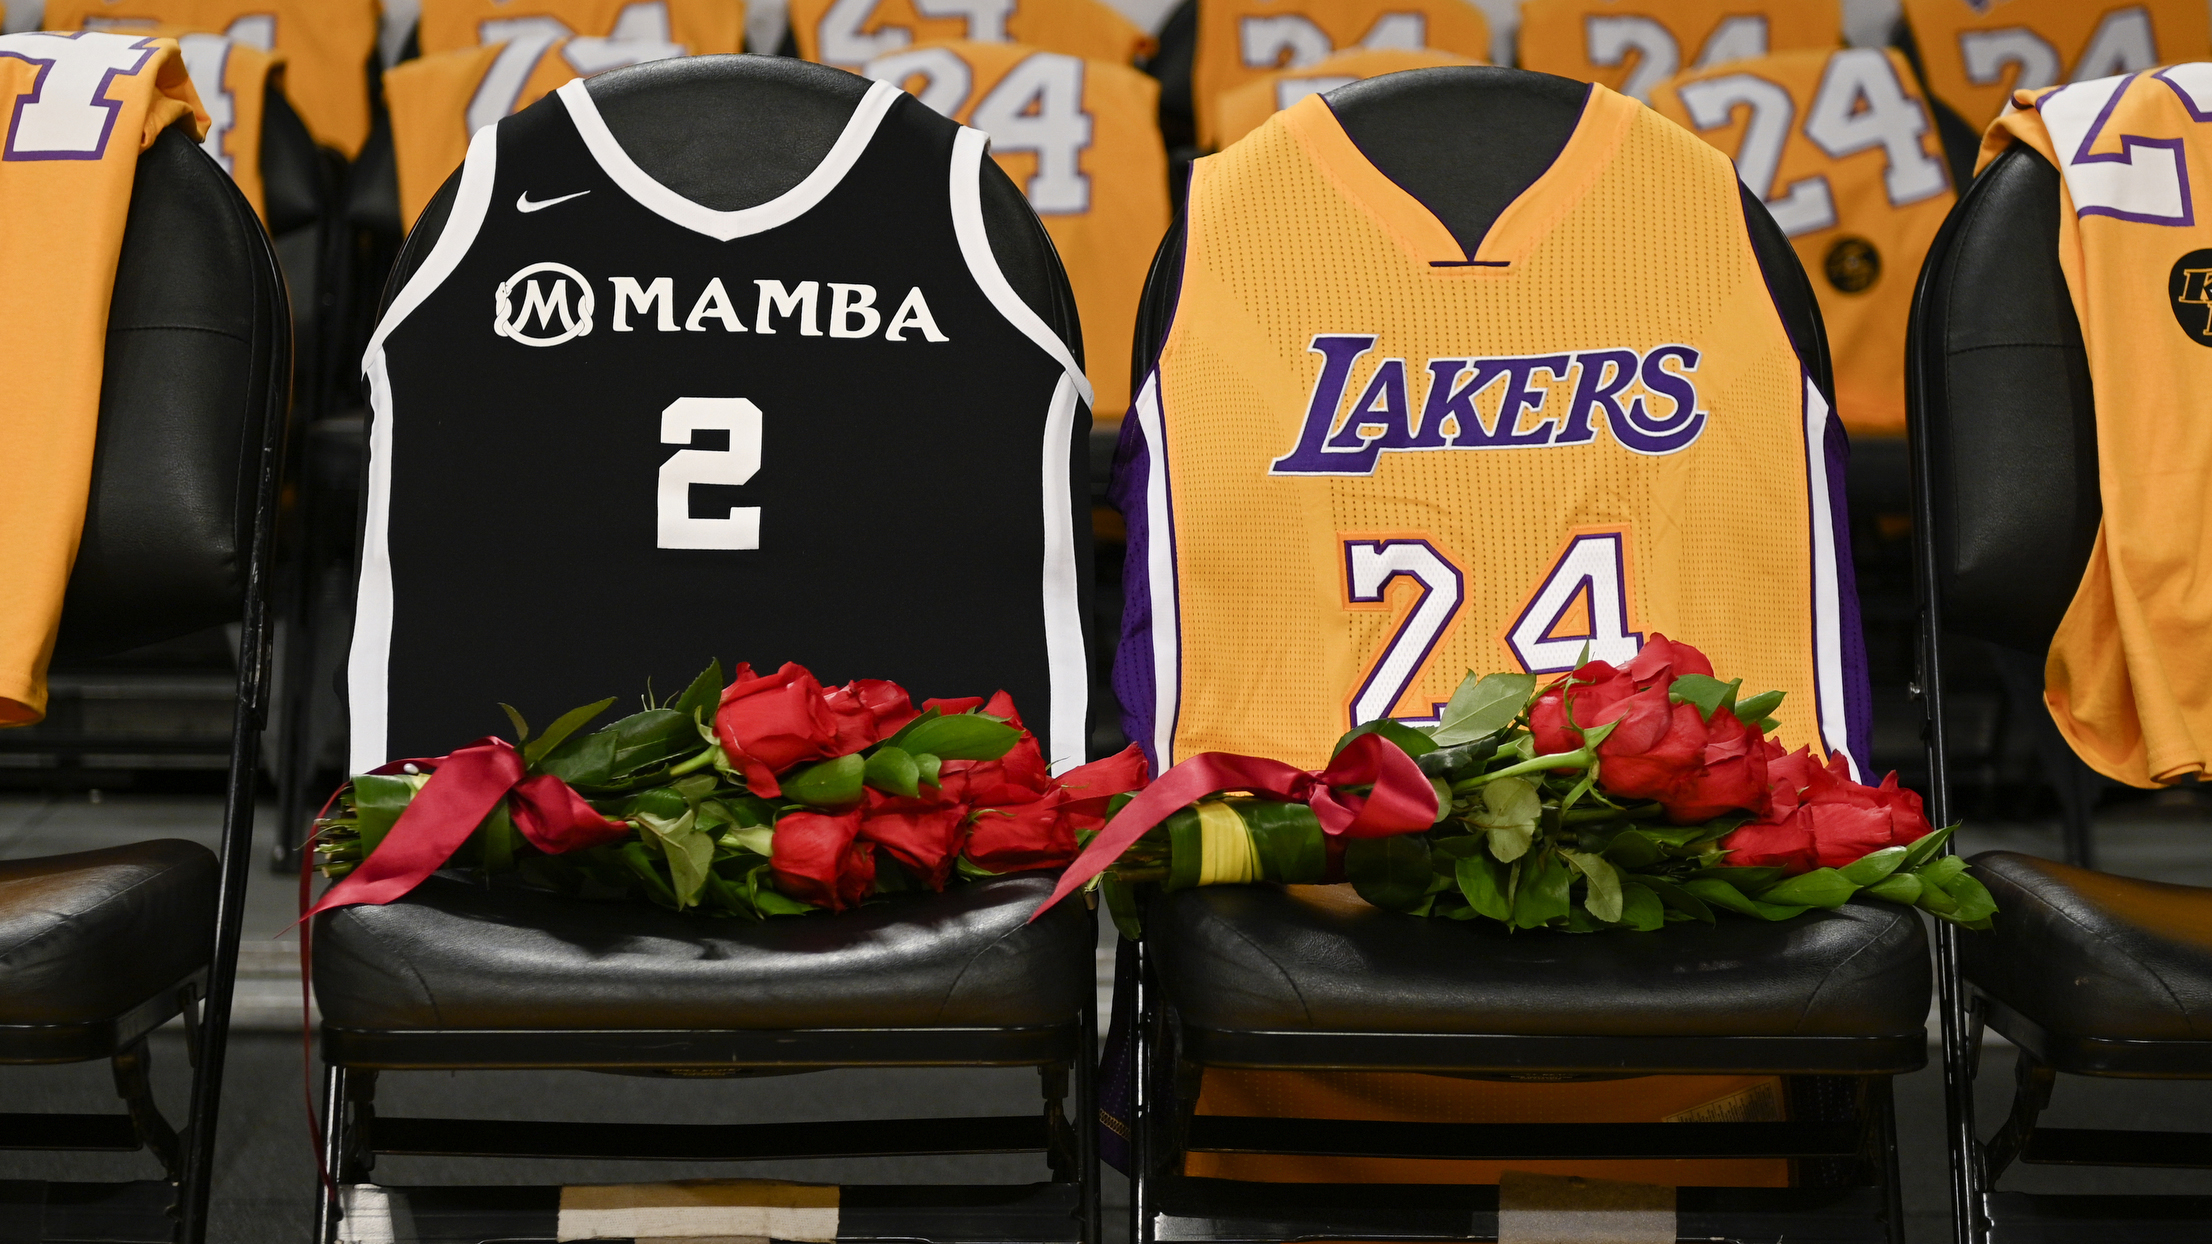 Kobe and Gianna Bryant celebrated on 2/24 in honor of jersey ...